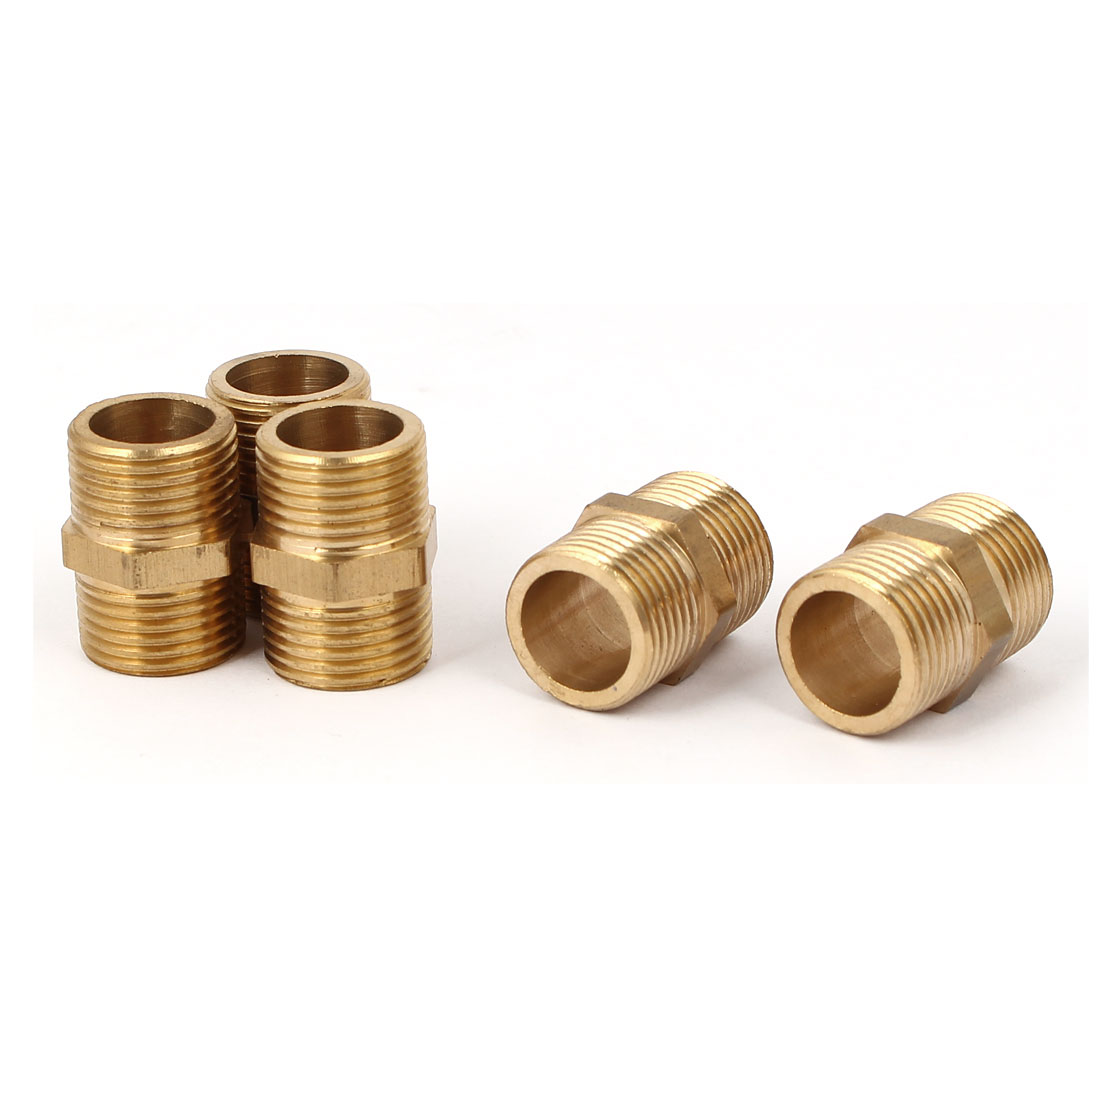 3/8BSP Male Threaded Hex Reducing Nipple Pipe Fitting Brass Tone 5pcs